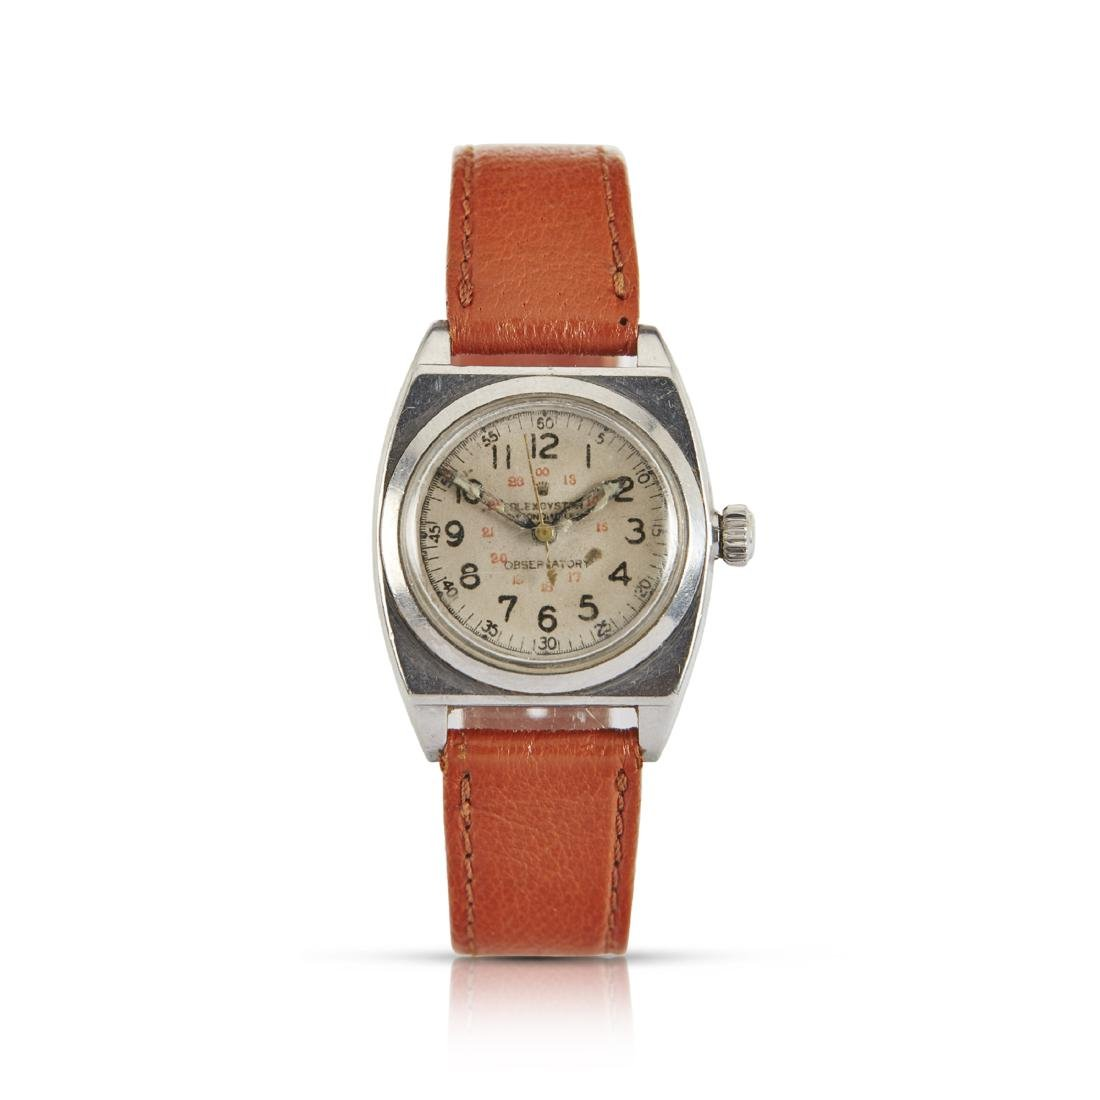 Rolex Oyster, Observatory, Ref. 3115